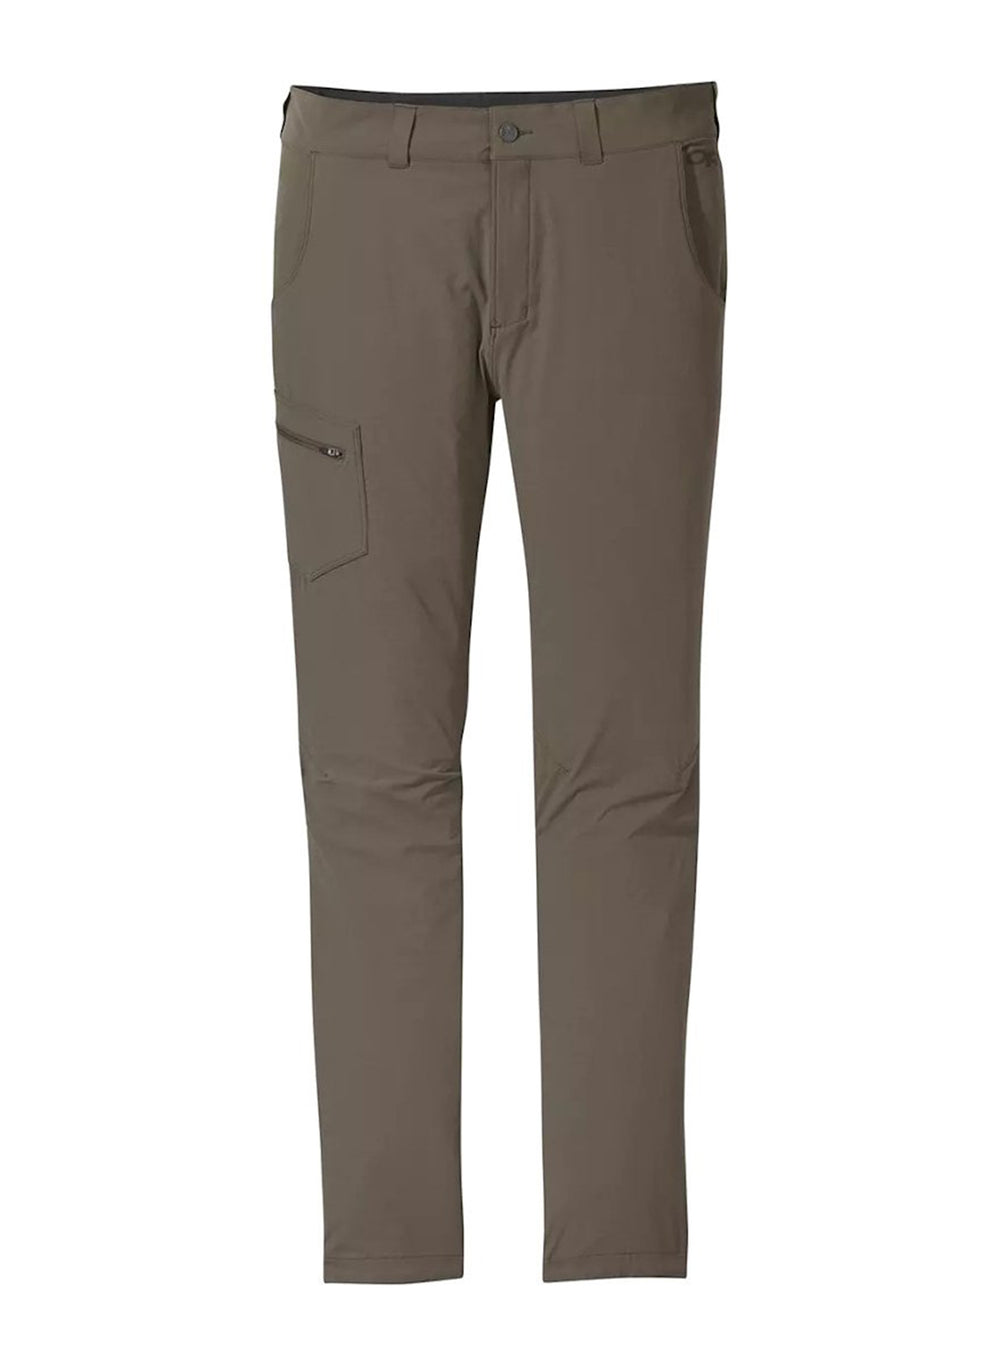 Outdoor Research Ferrosi Pants - Men's